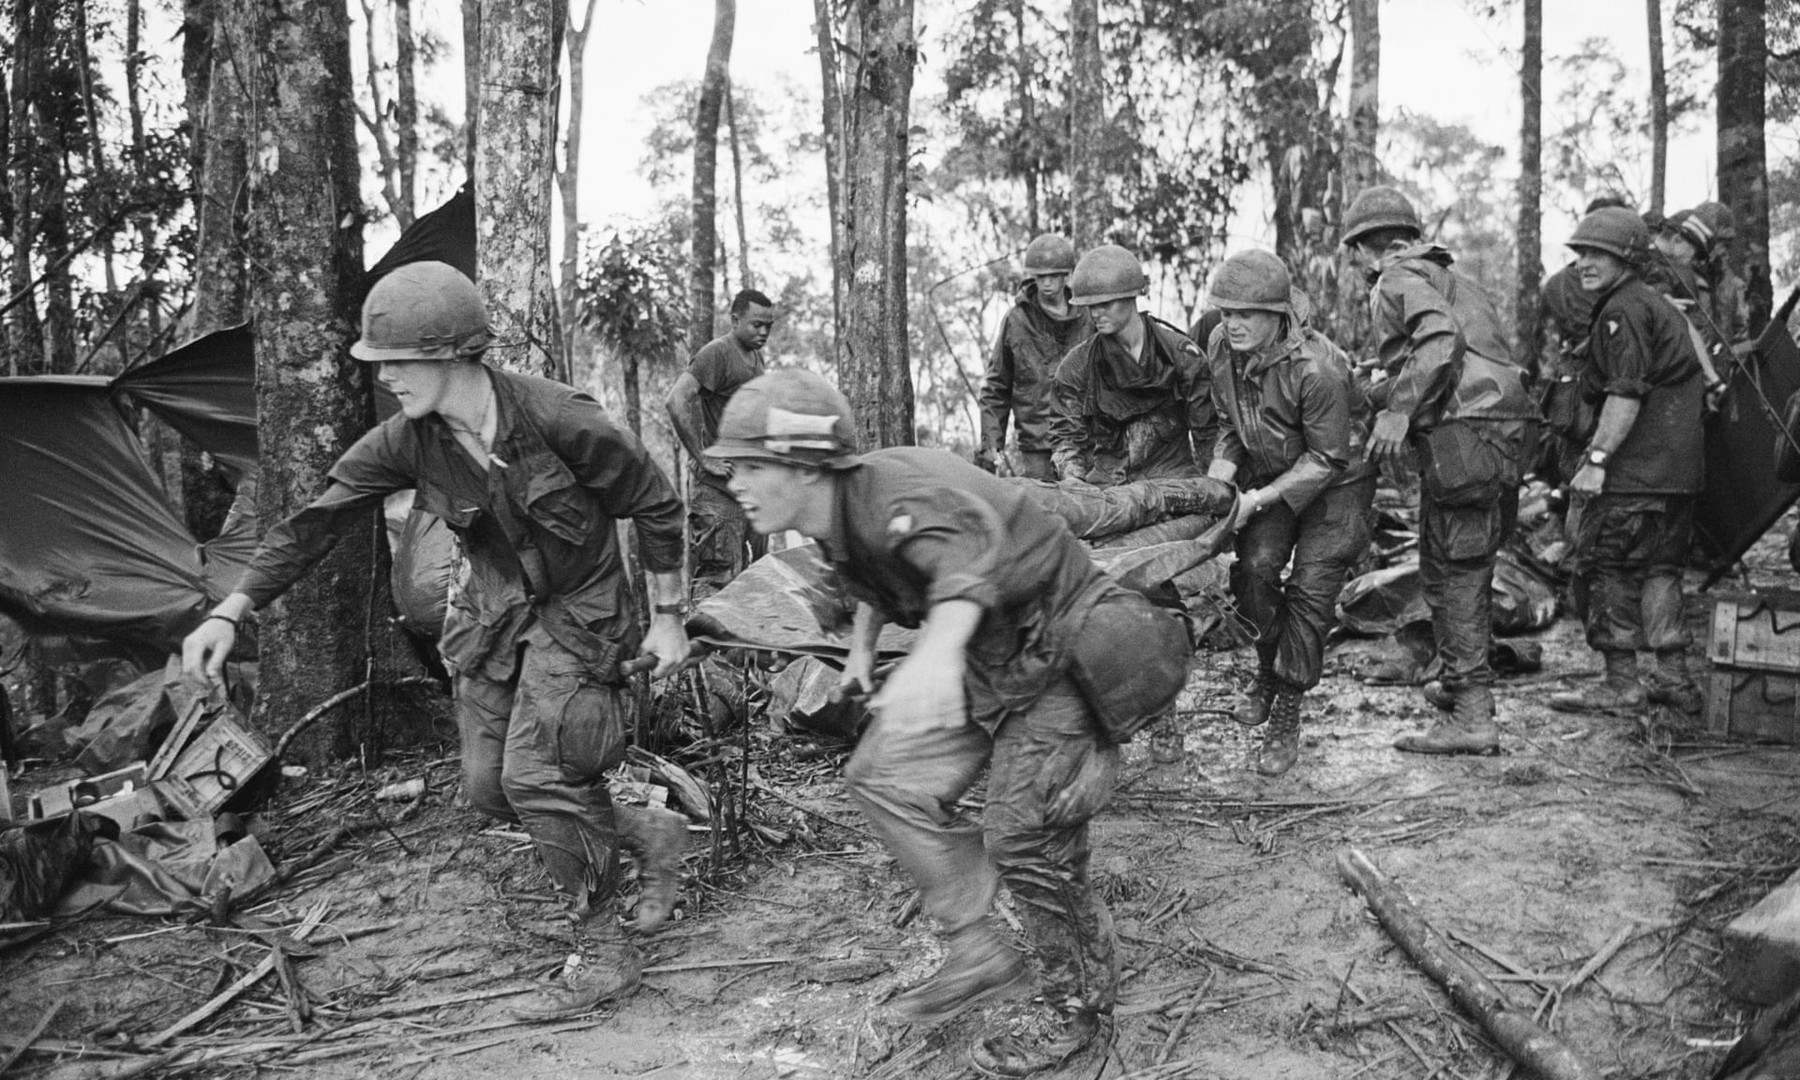 A quartet of U.S. 101st Air Division troopers keep low as they rush a stretcher-borne wounded comrade to a medical aid station during the battle for Hamburger Hill.   Source: Corbis, Bettman Archive